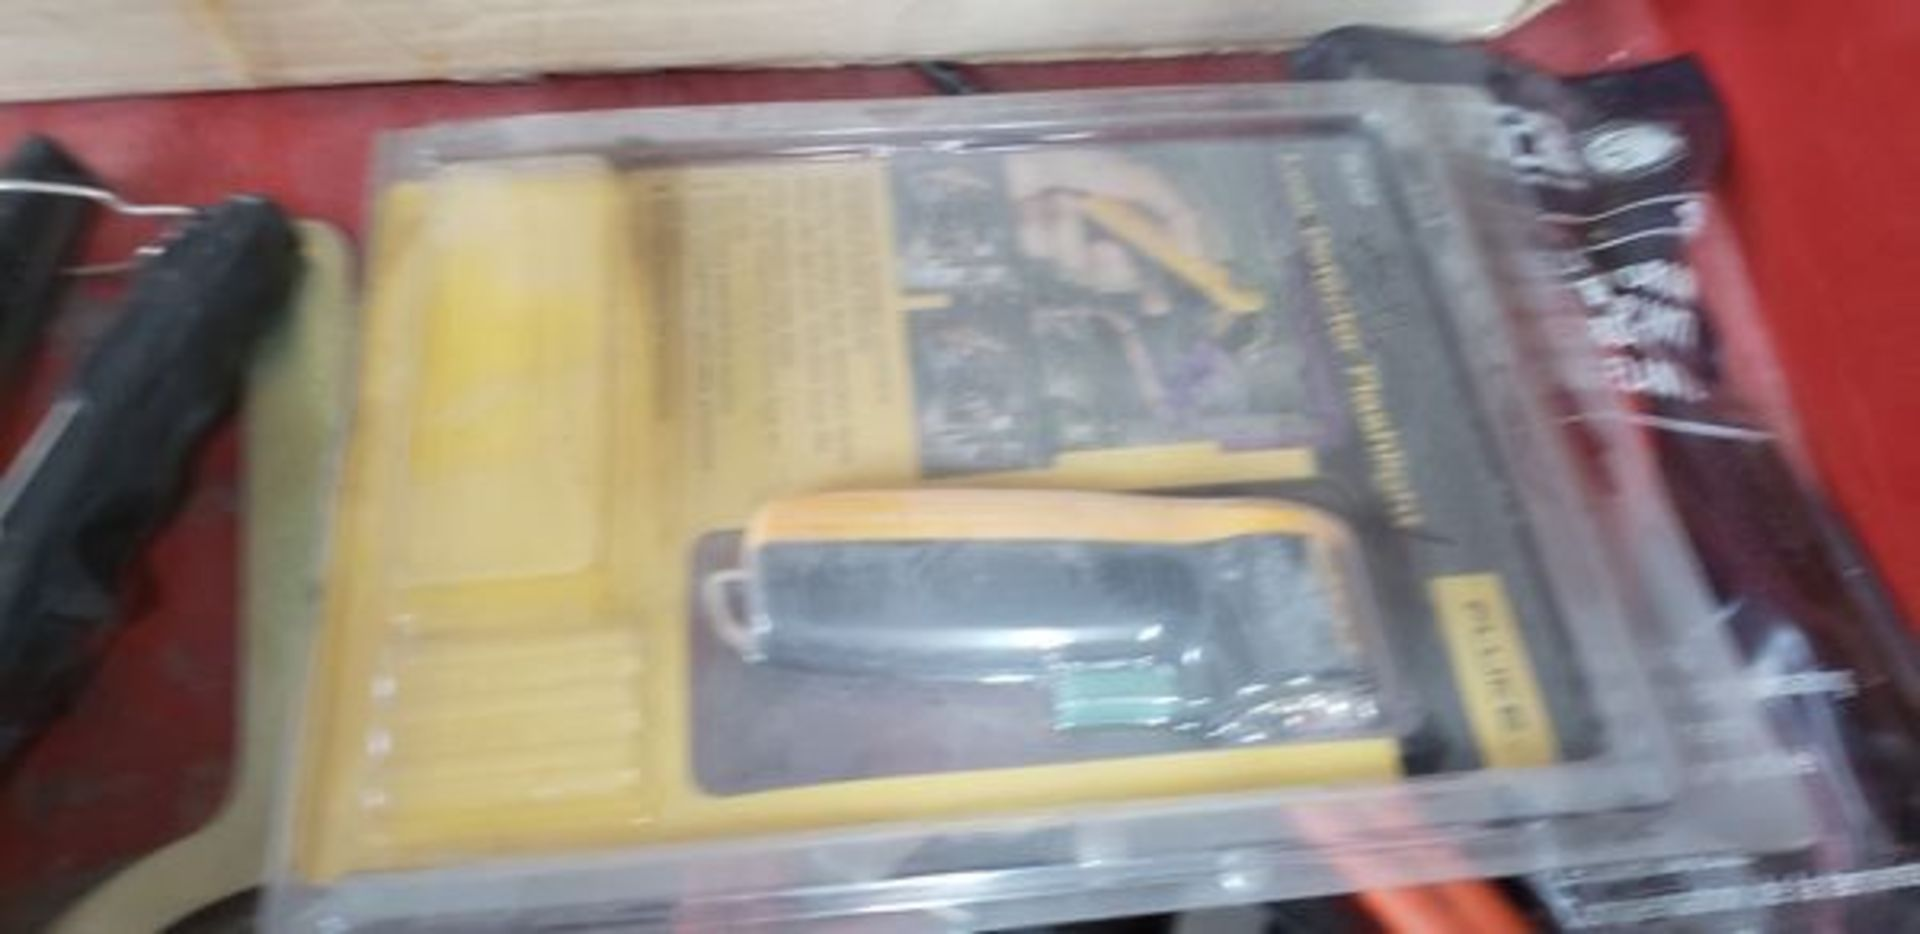 ASSORTED TOOLS IN DRAWER - Image 3 of 10